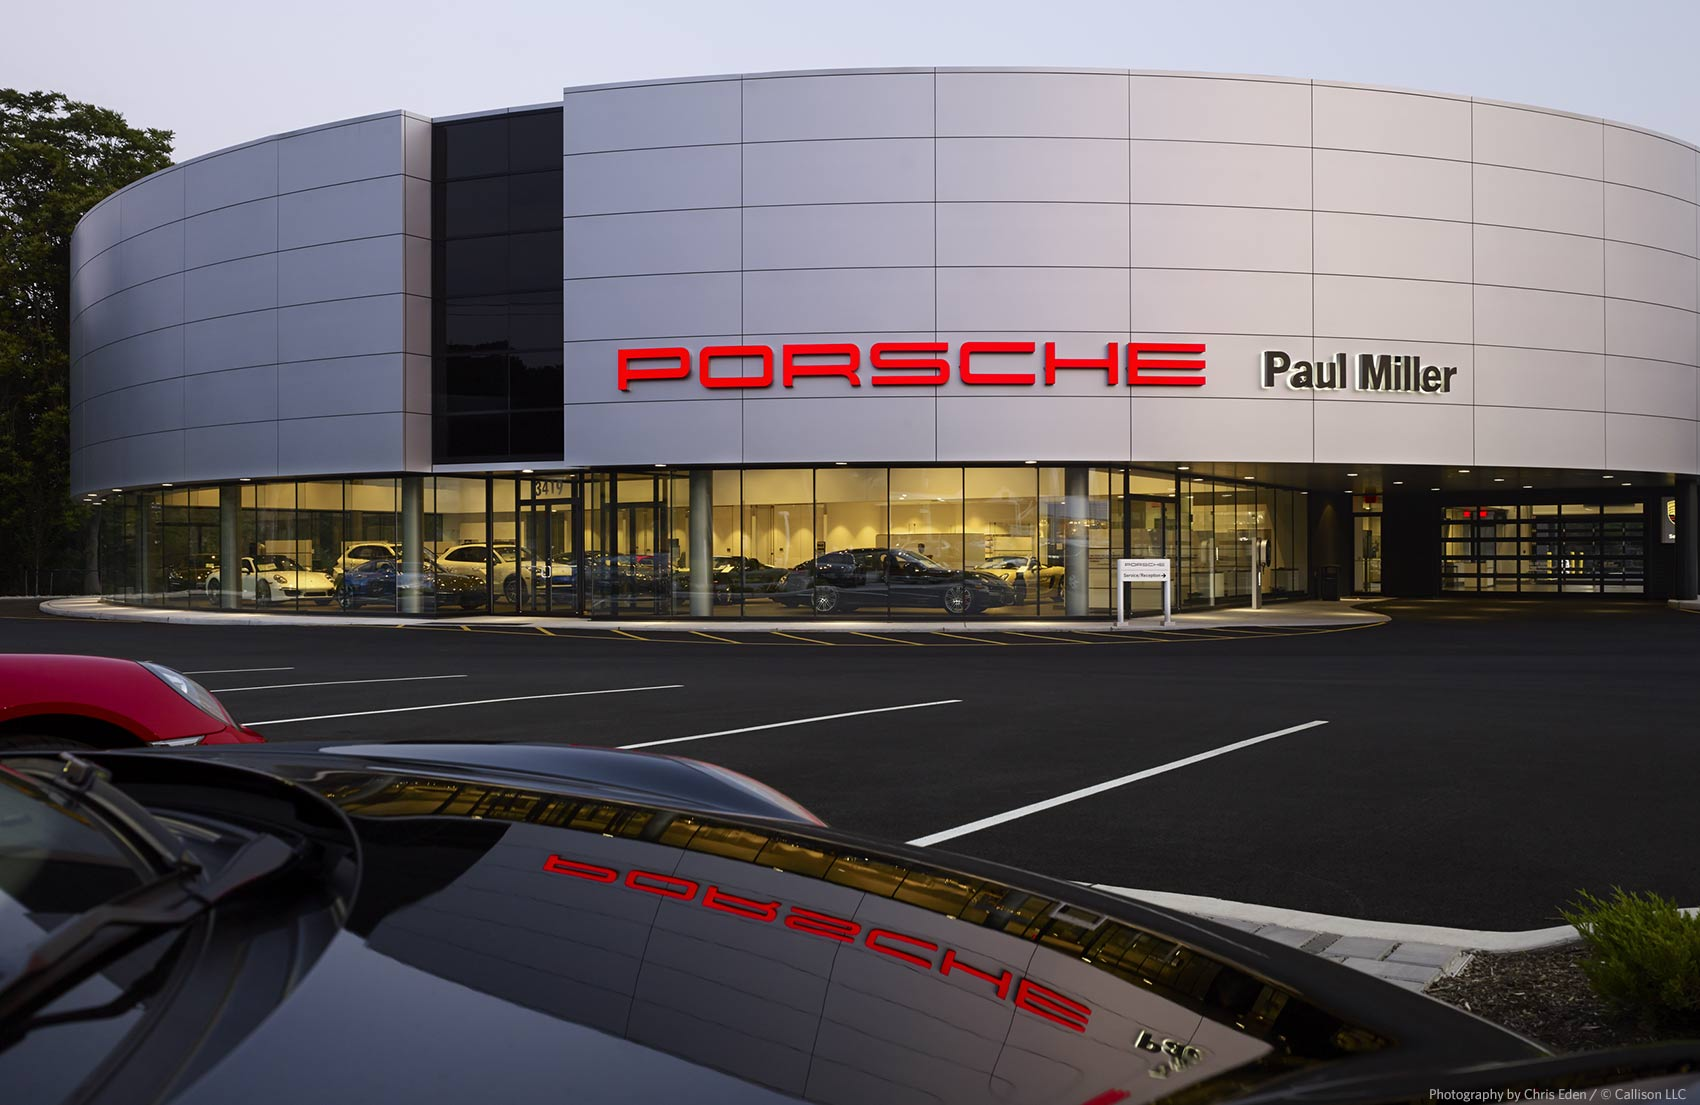 Paul Miller Porsche - Exterior with product reflection